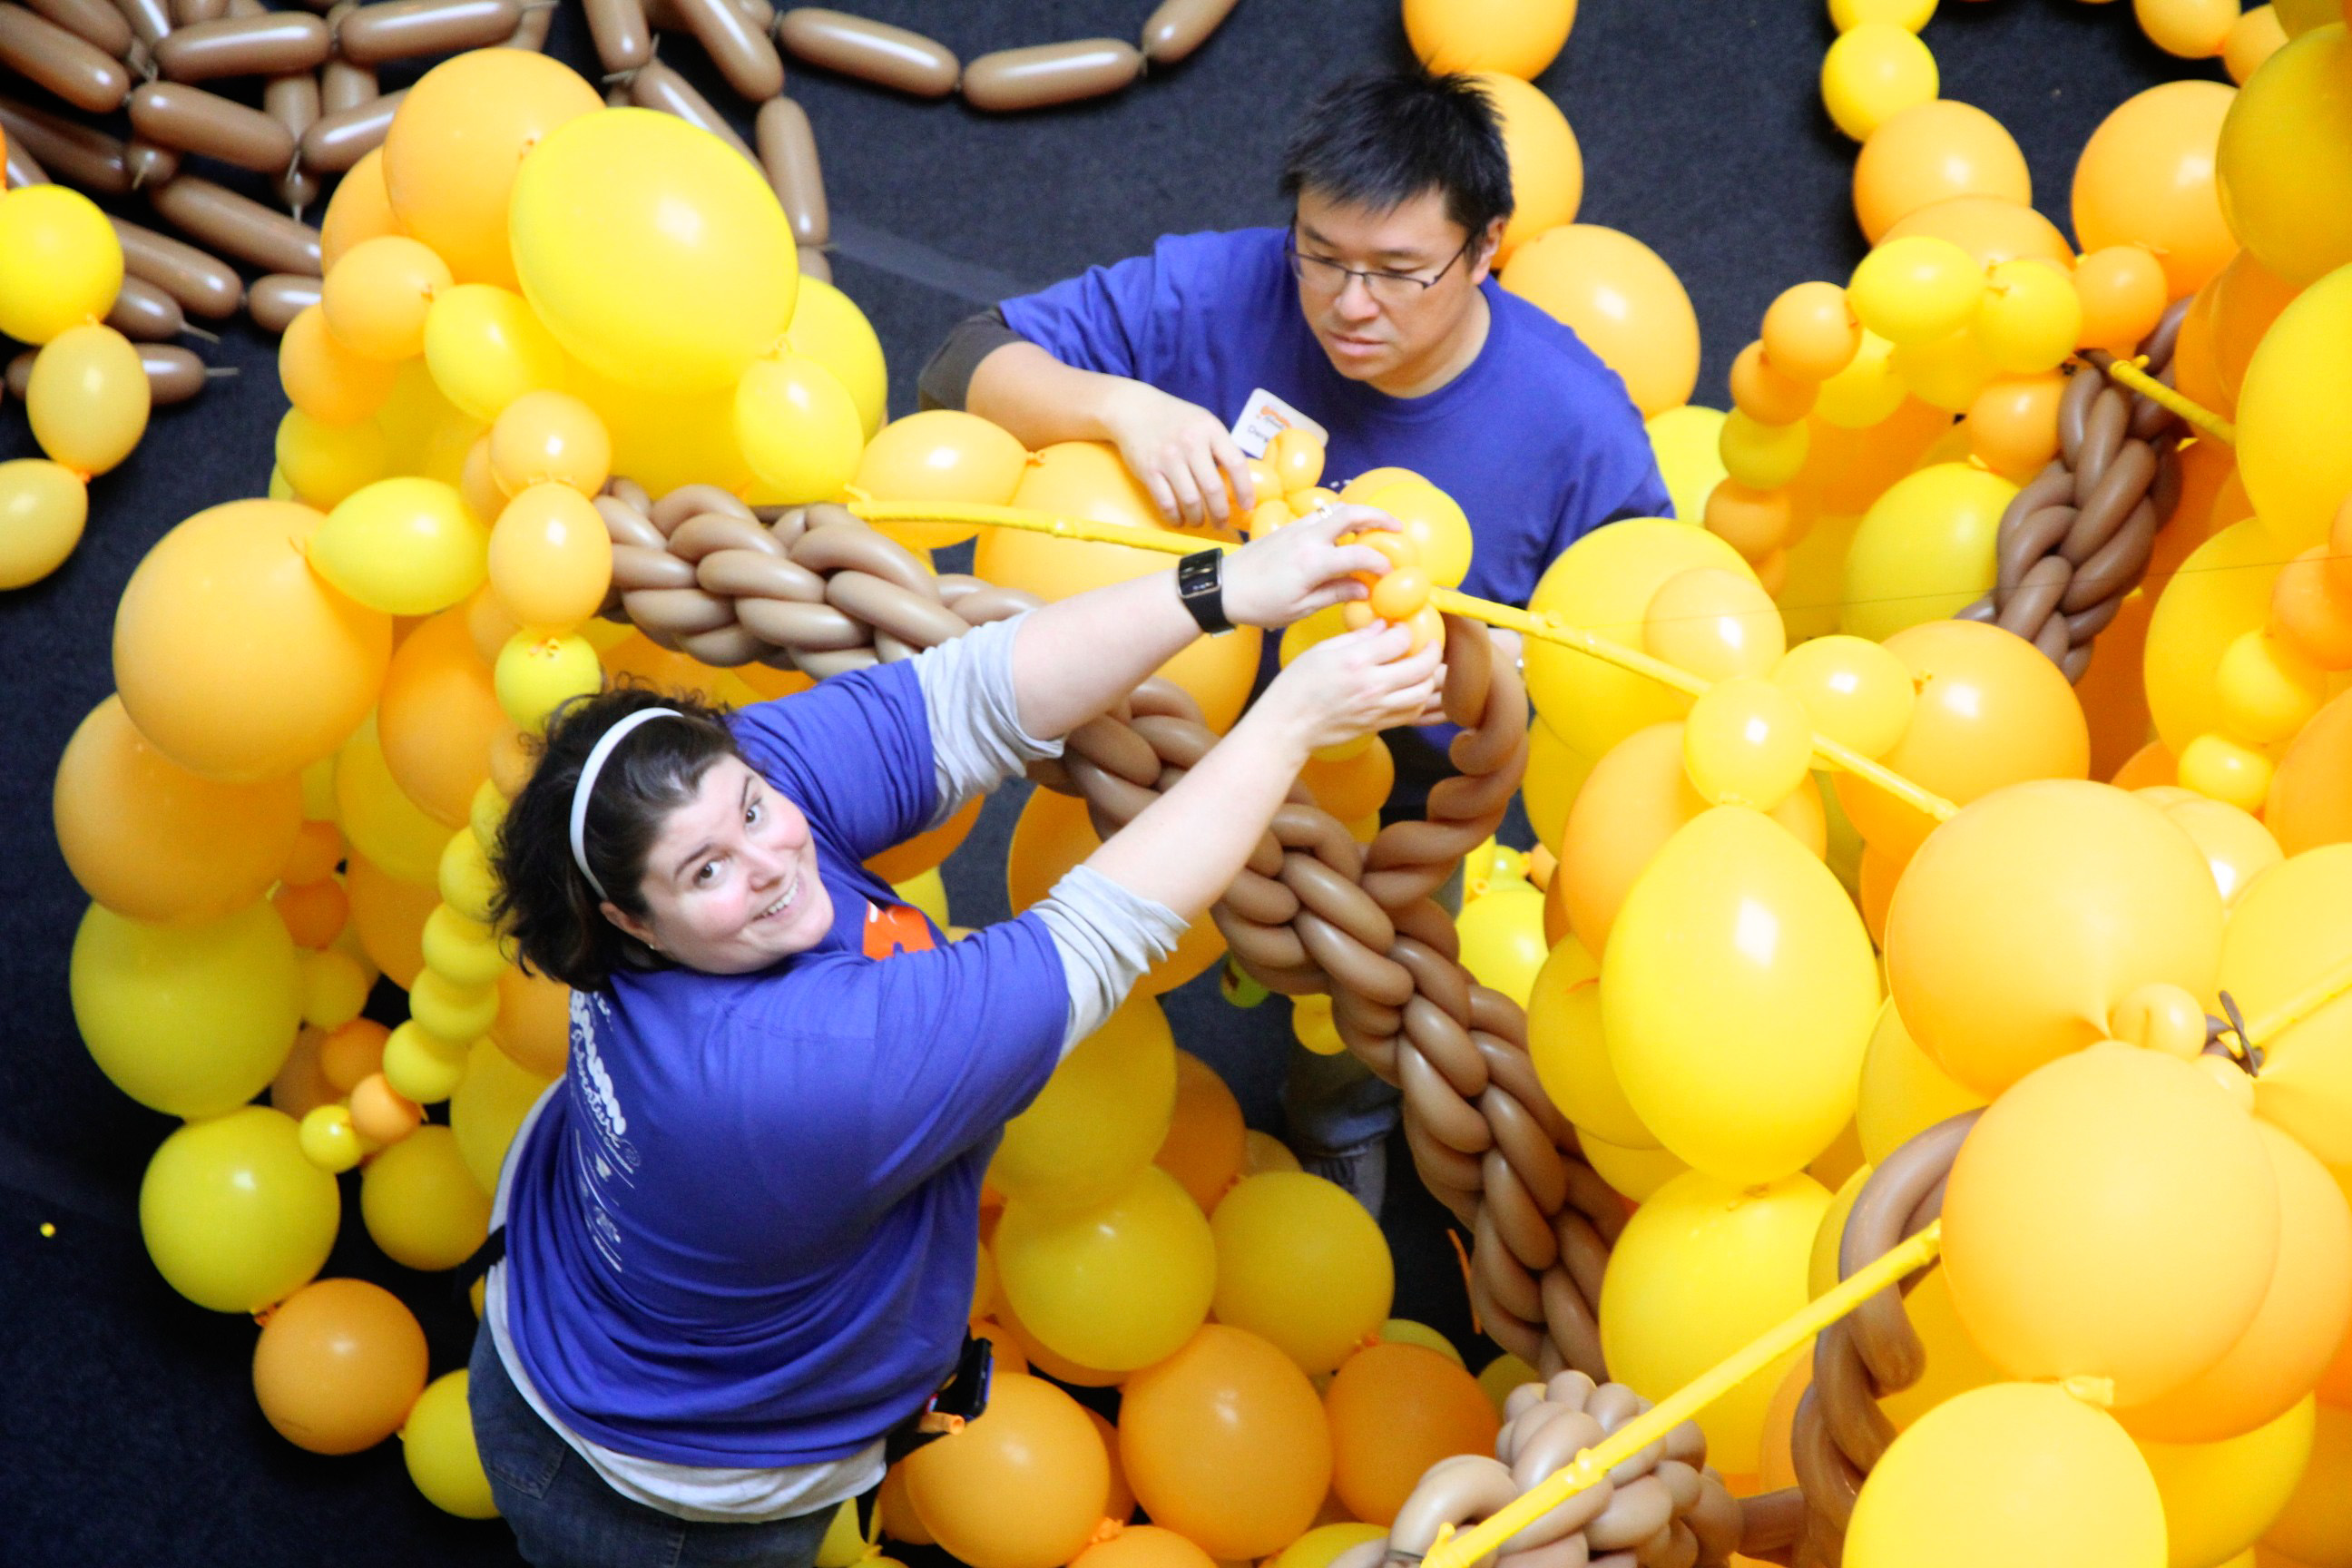 Sculpting Massive Scenes with Balloons Brings a New Twist to STEM Education